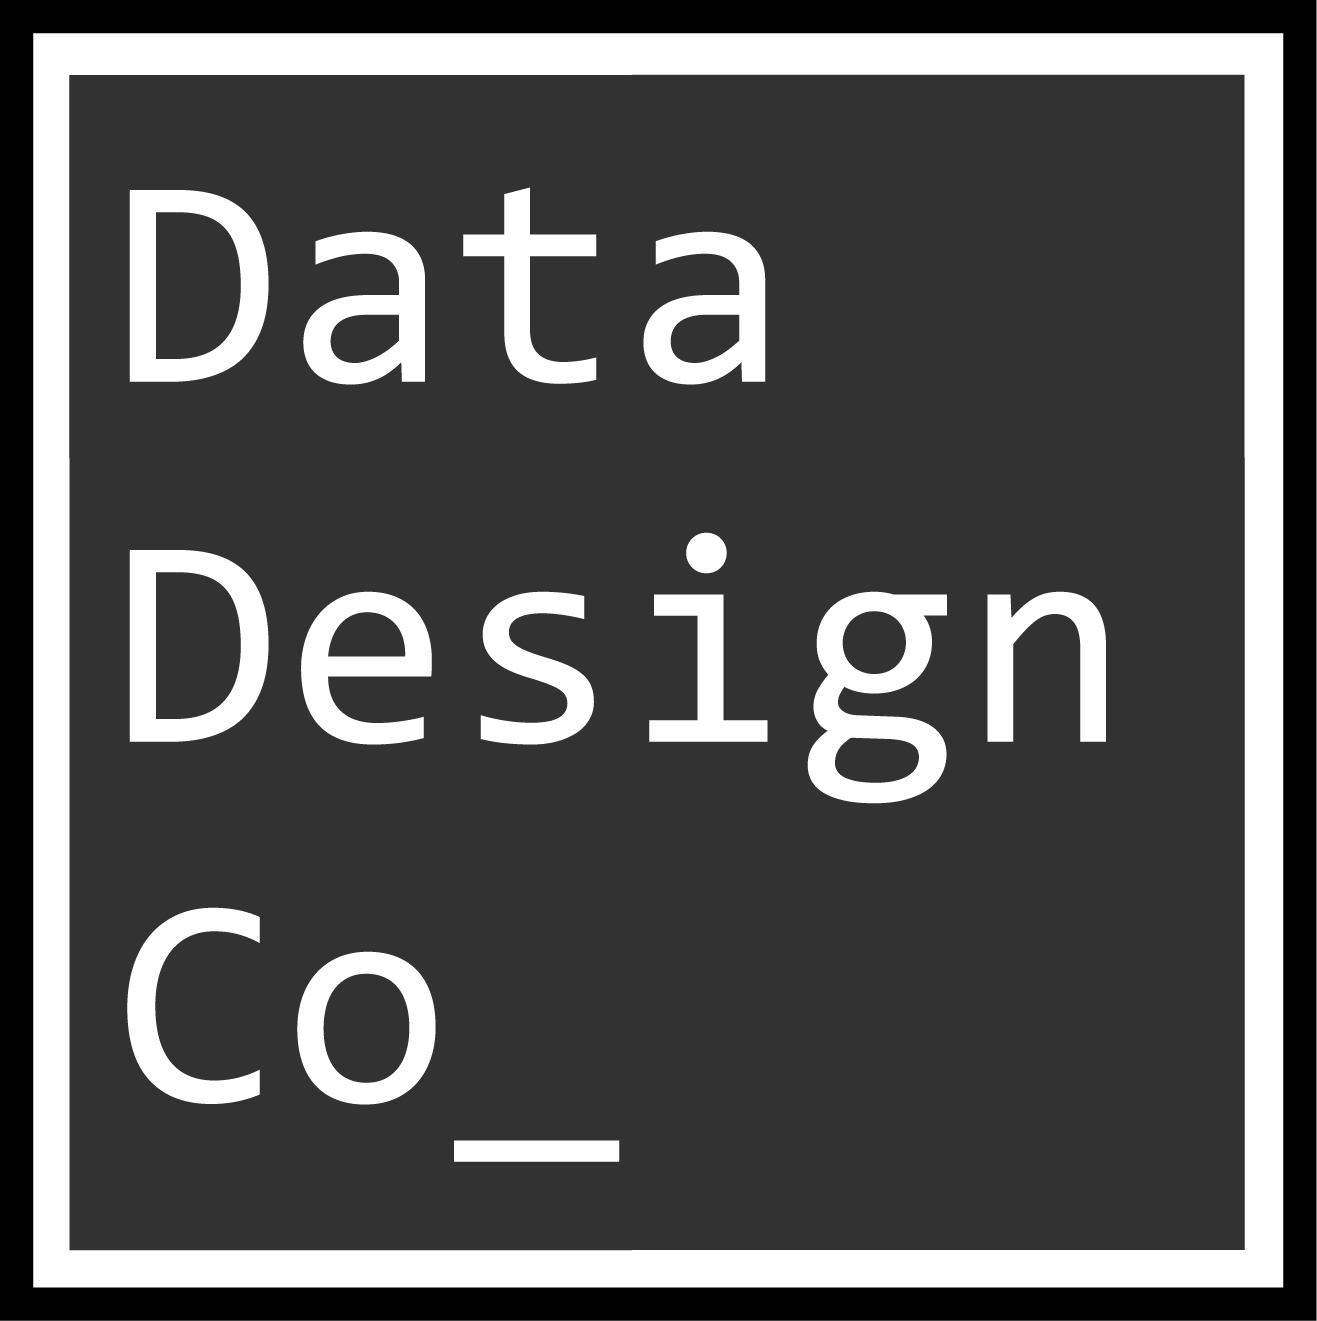 Data Design Co_